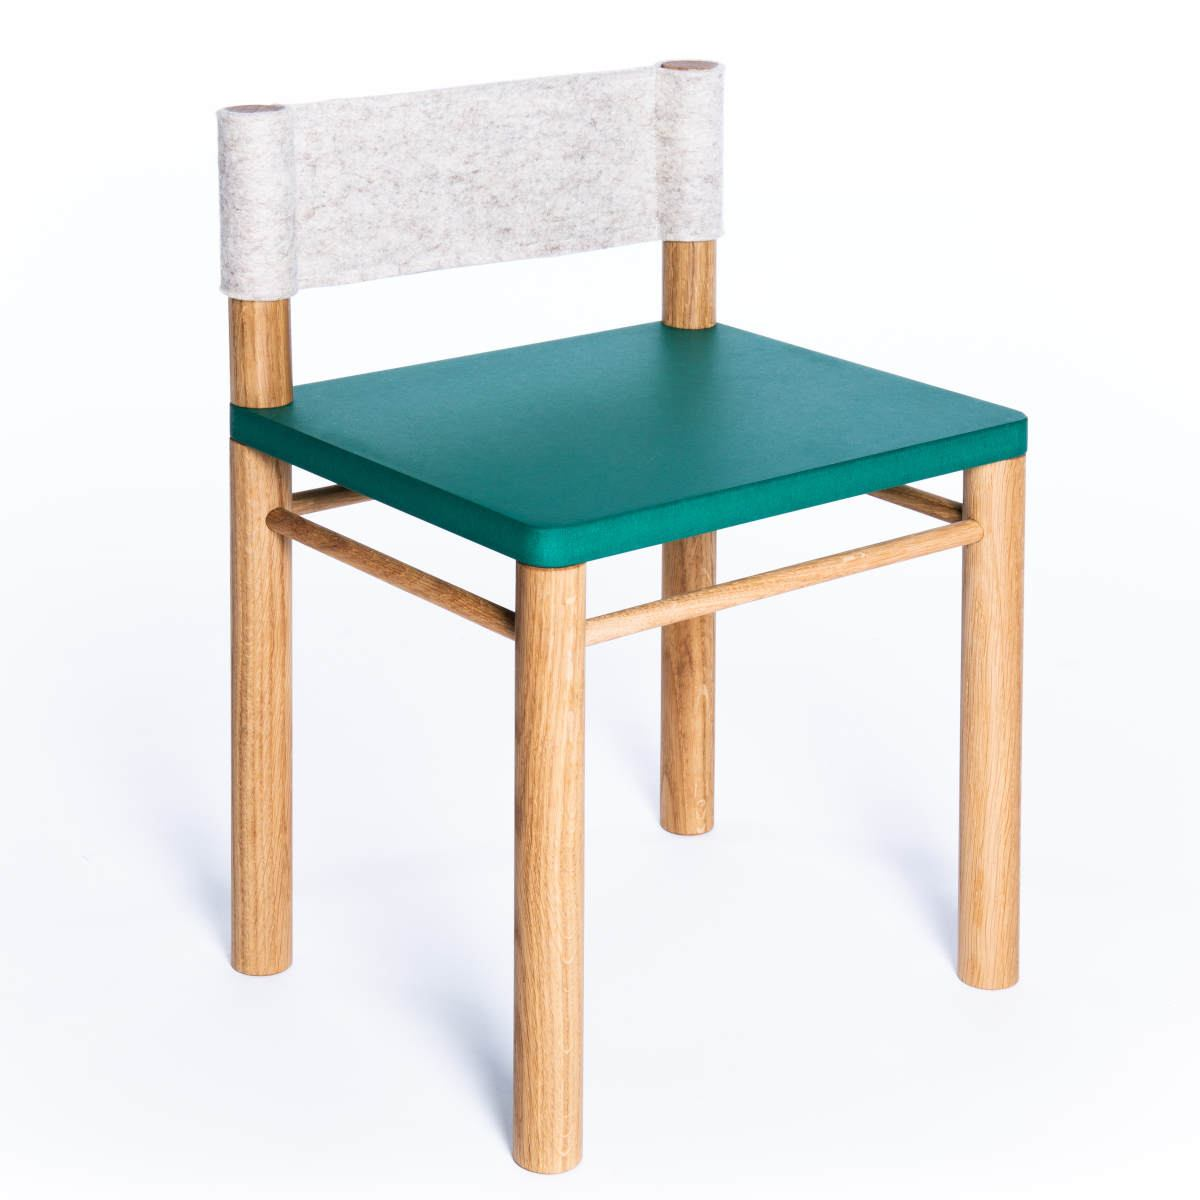 Green version: Solid wood children's chair with wool felt backrest